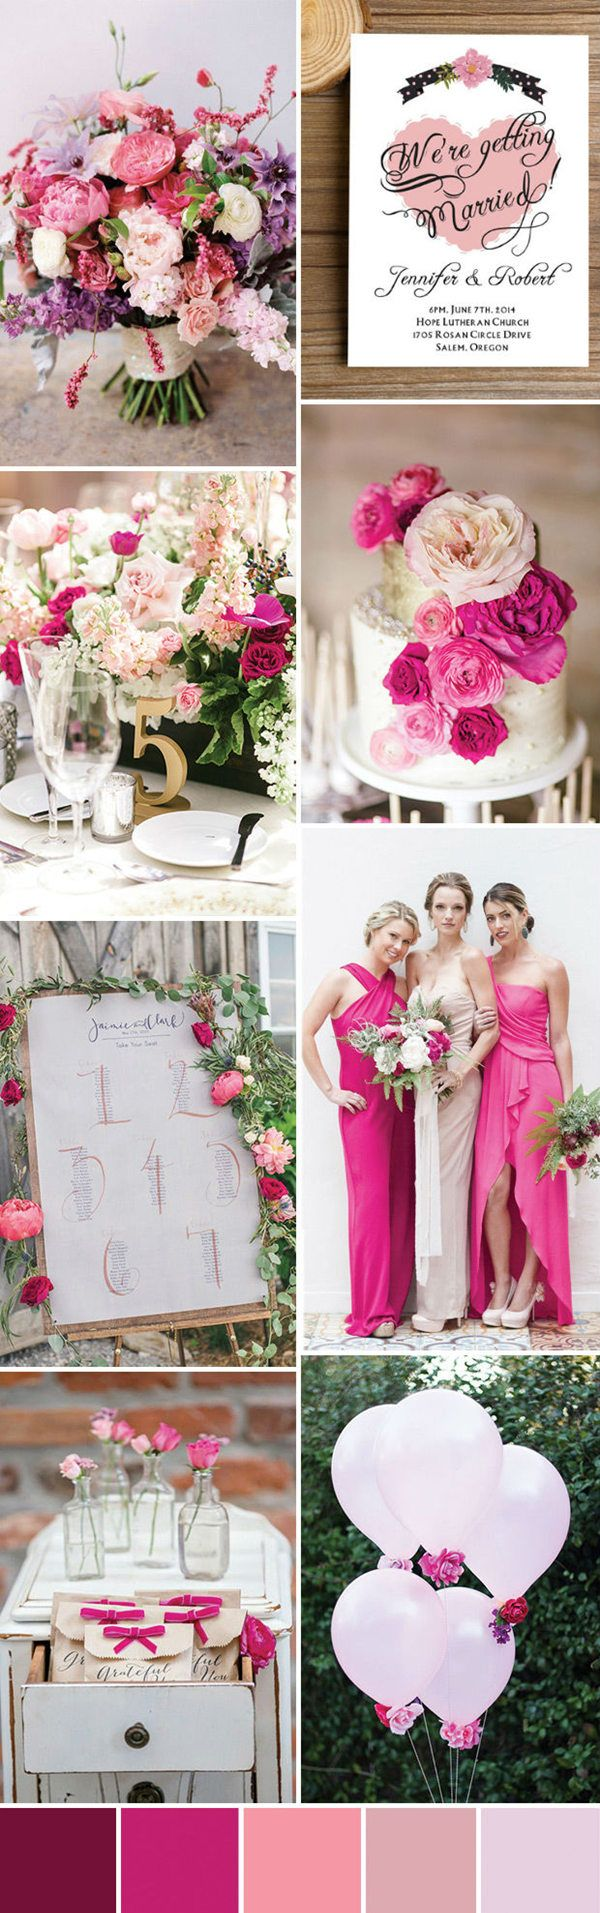 romantic blush pink wedding ideas you'll love